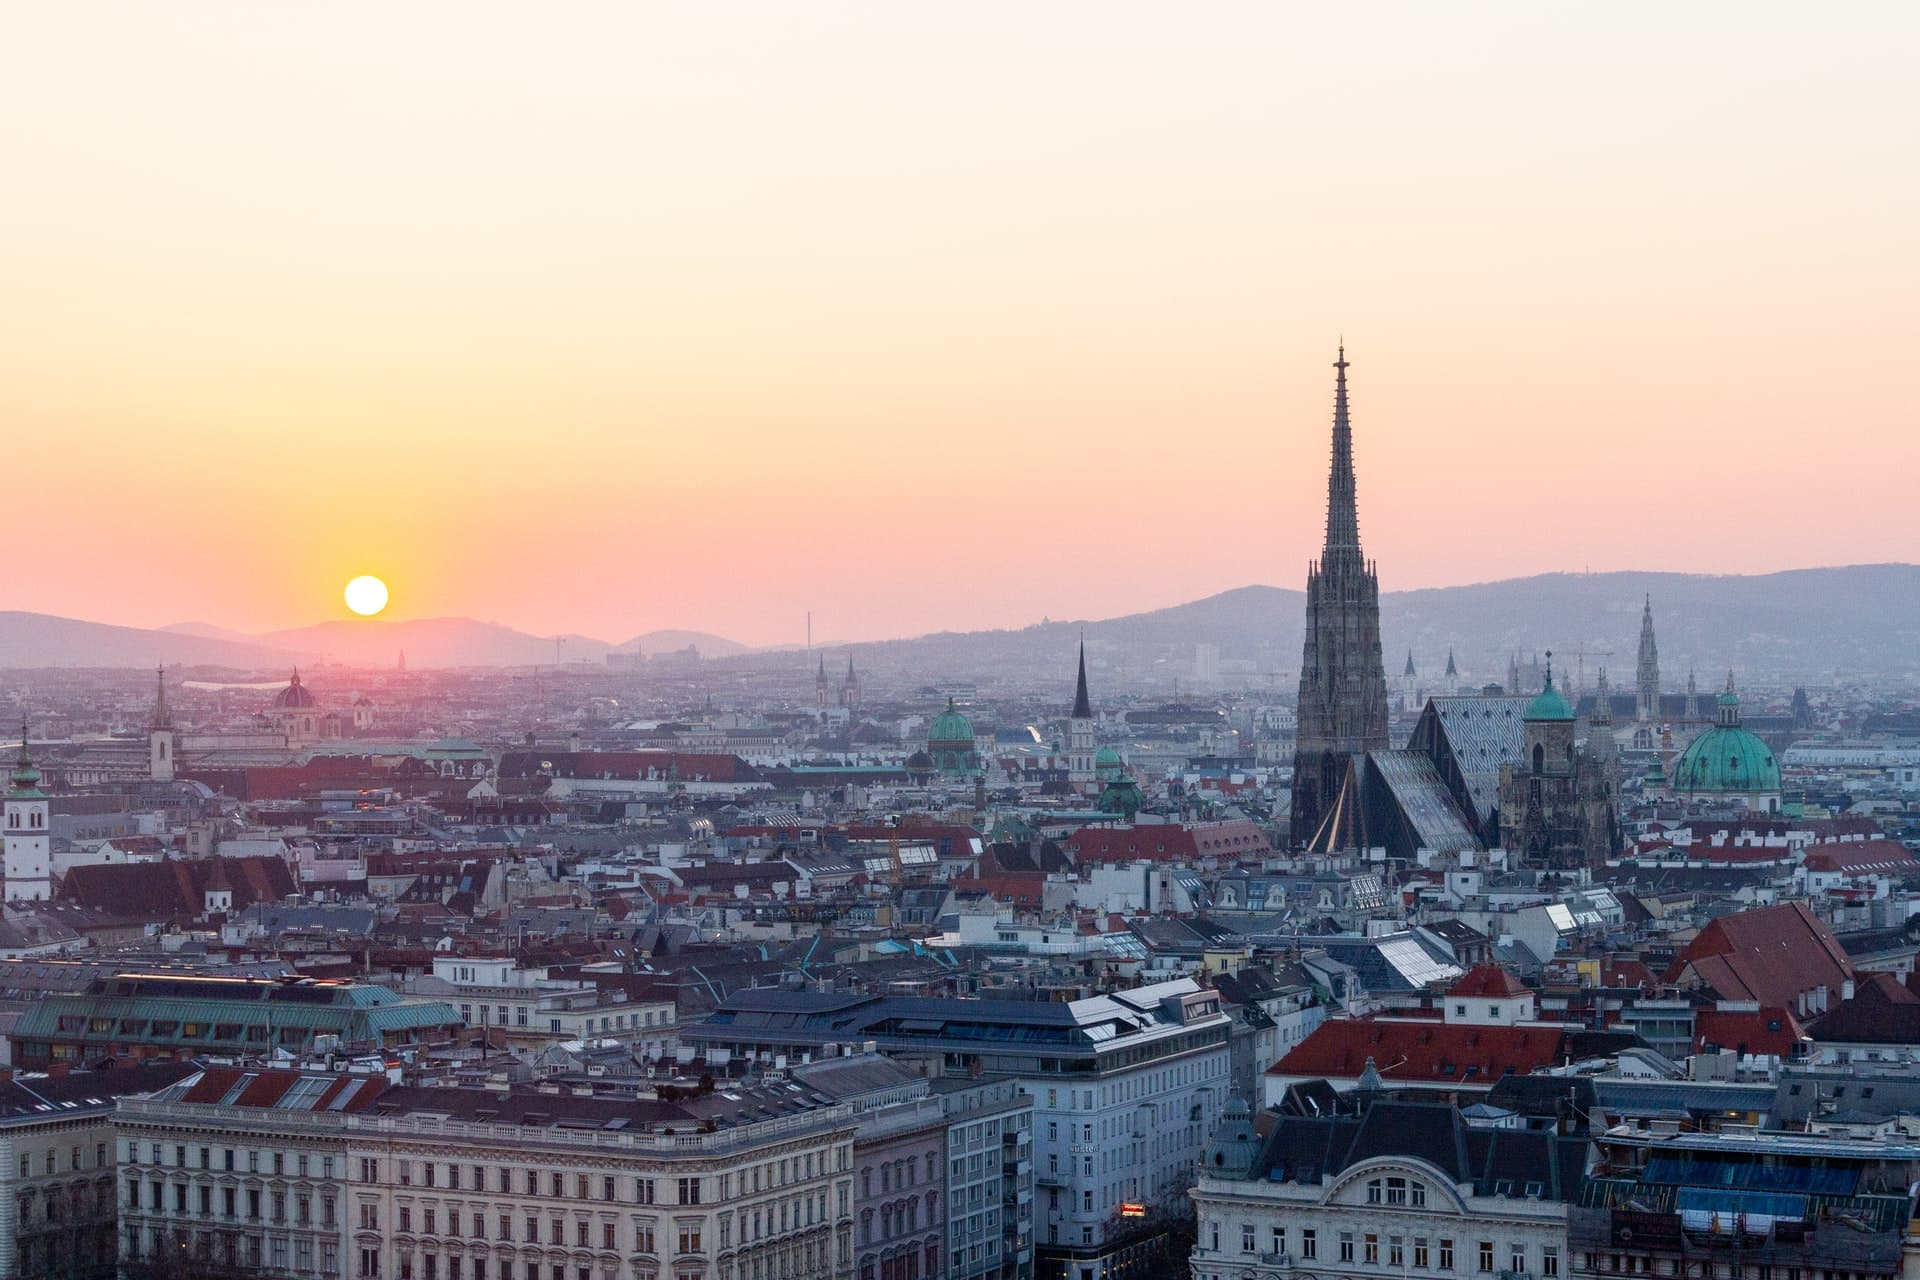 Sunset over the city of Vienna, a great place for backpackers and solo travel during 2 or 3 days in Vienna.